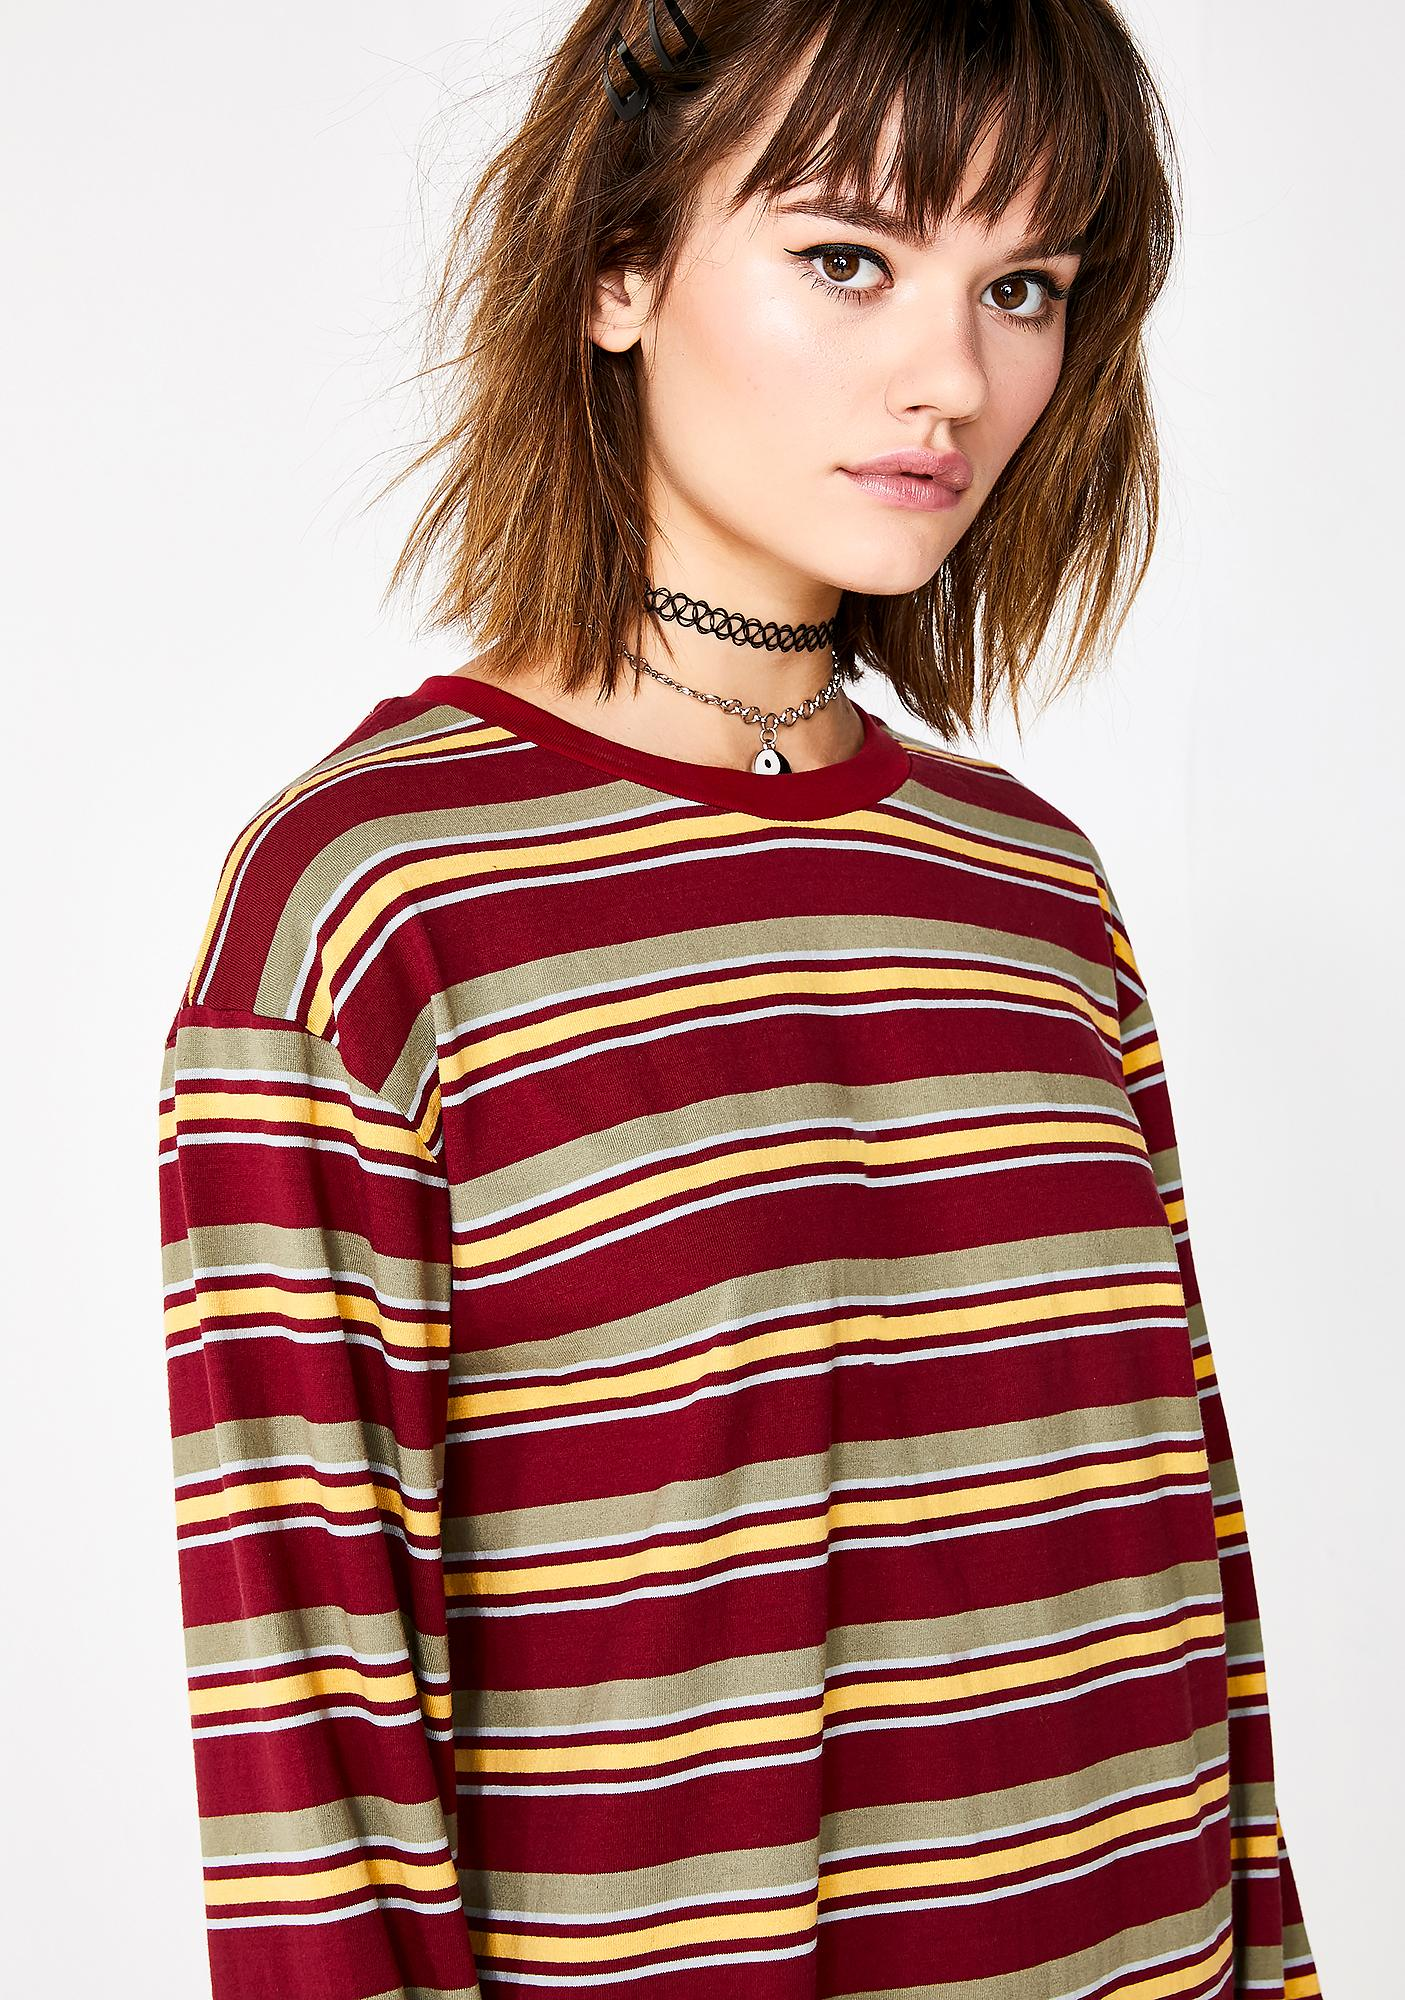 Current Mood Love Playin' Hooky Striped Top